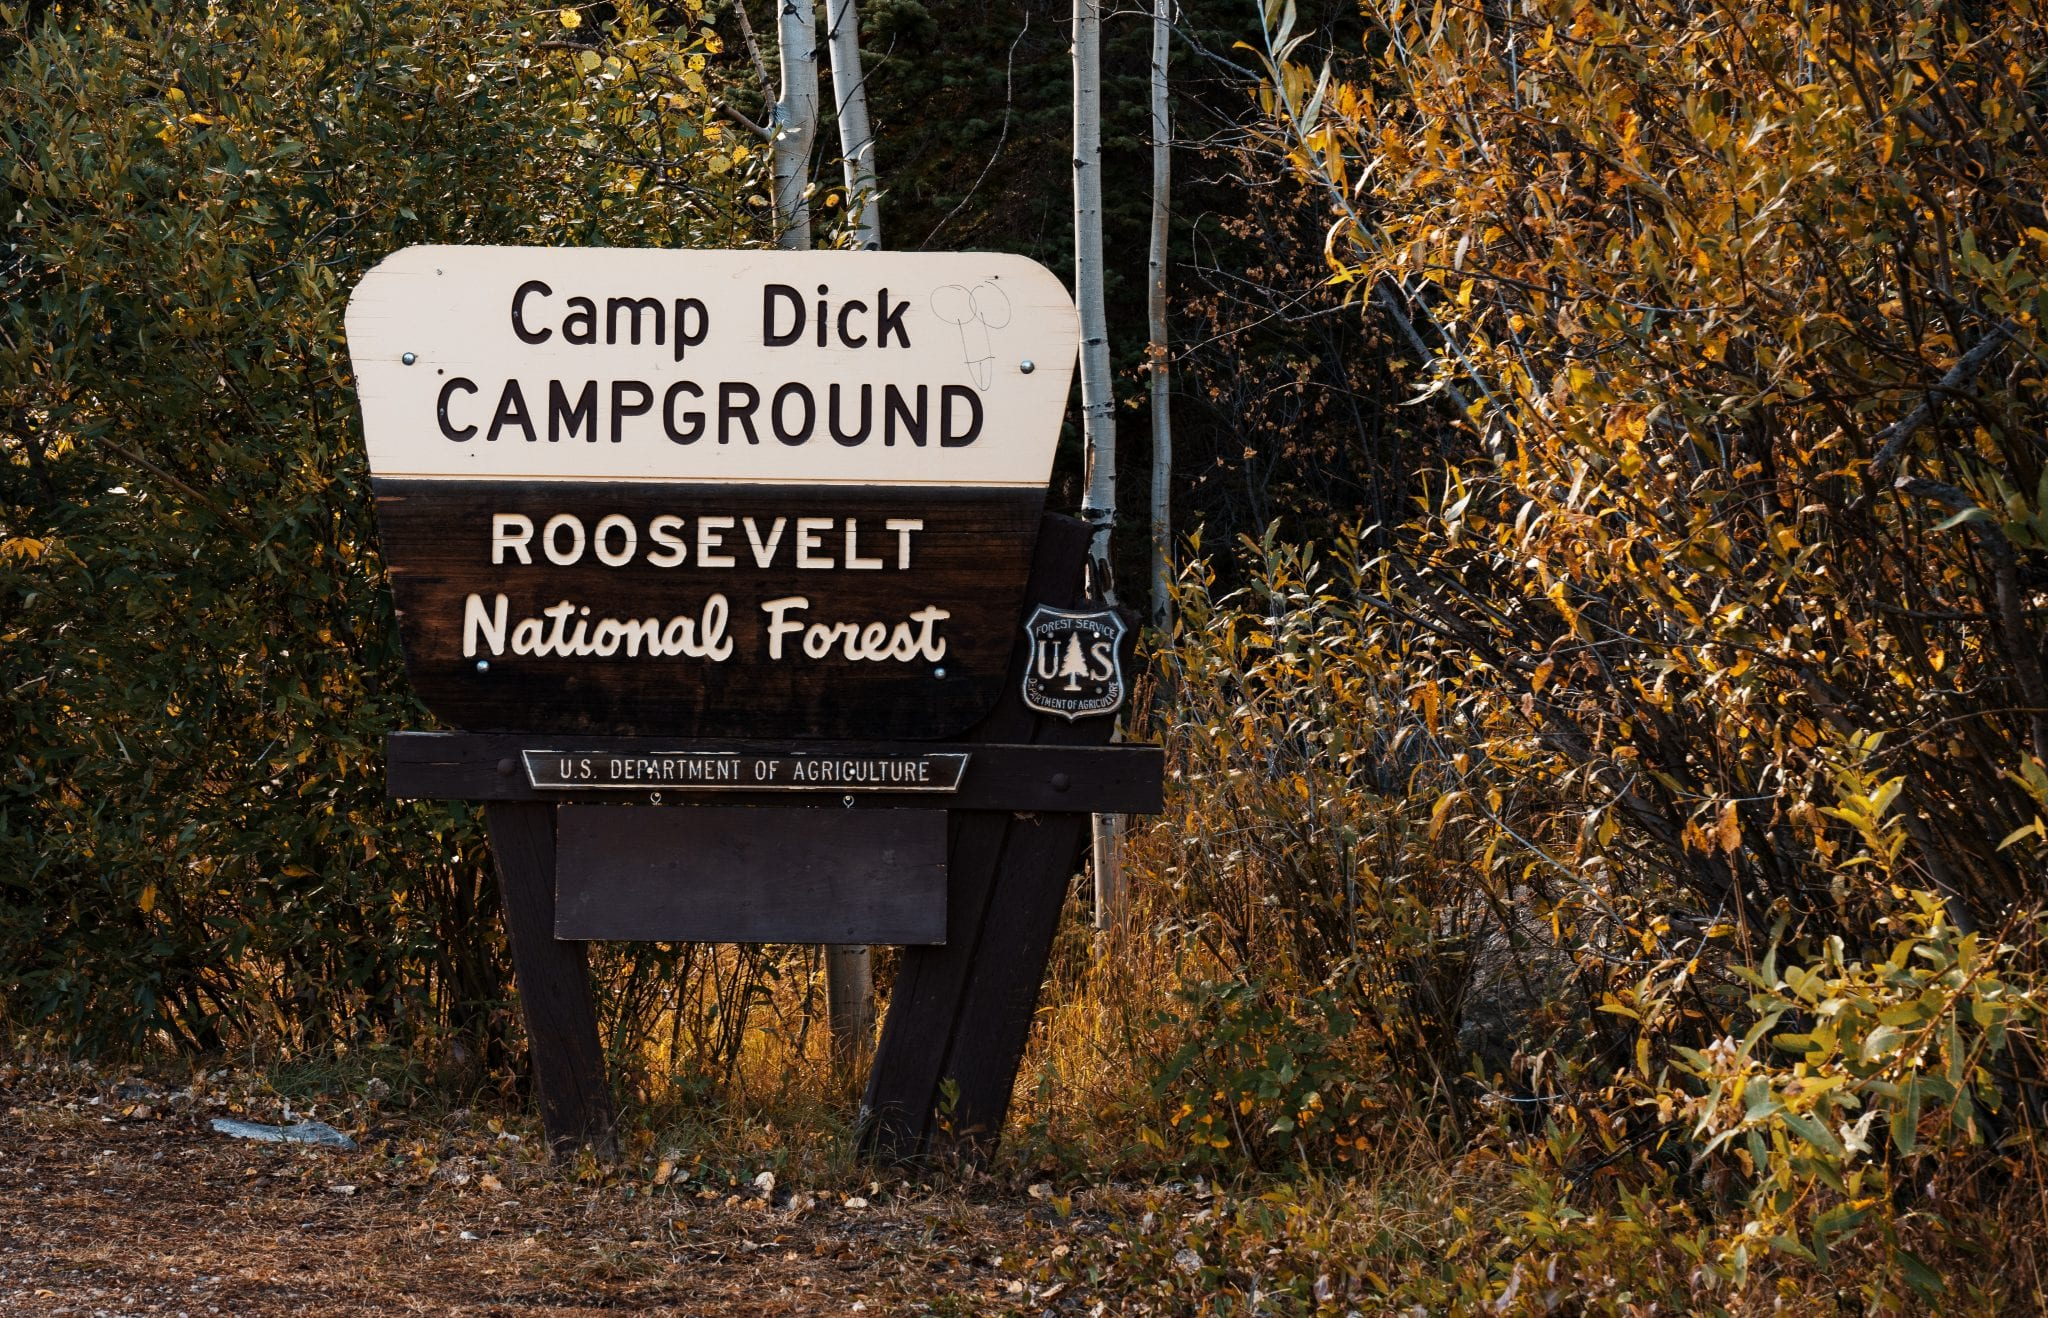 Camp Dick Campground Sign Roosevelt National Forest Colorado